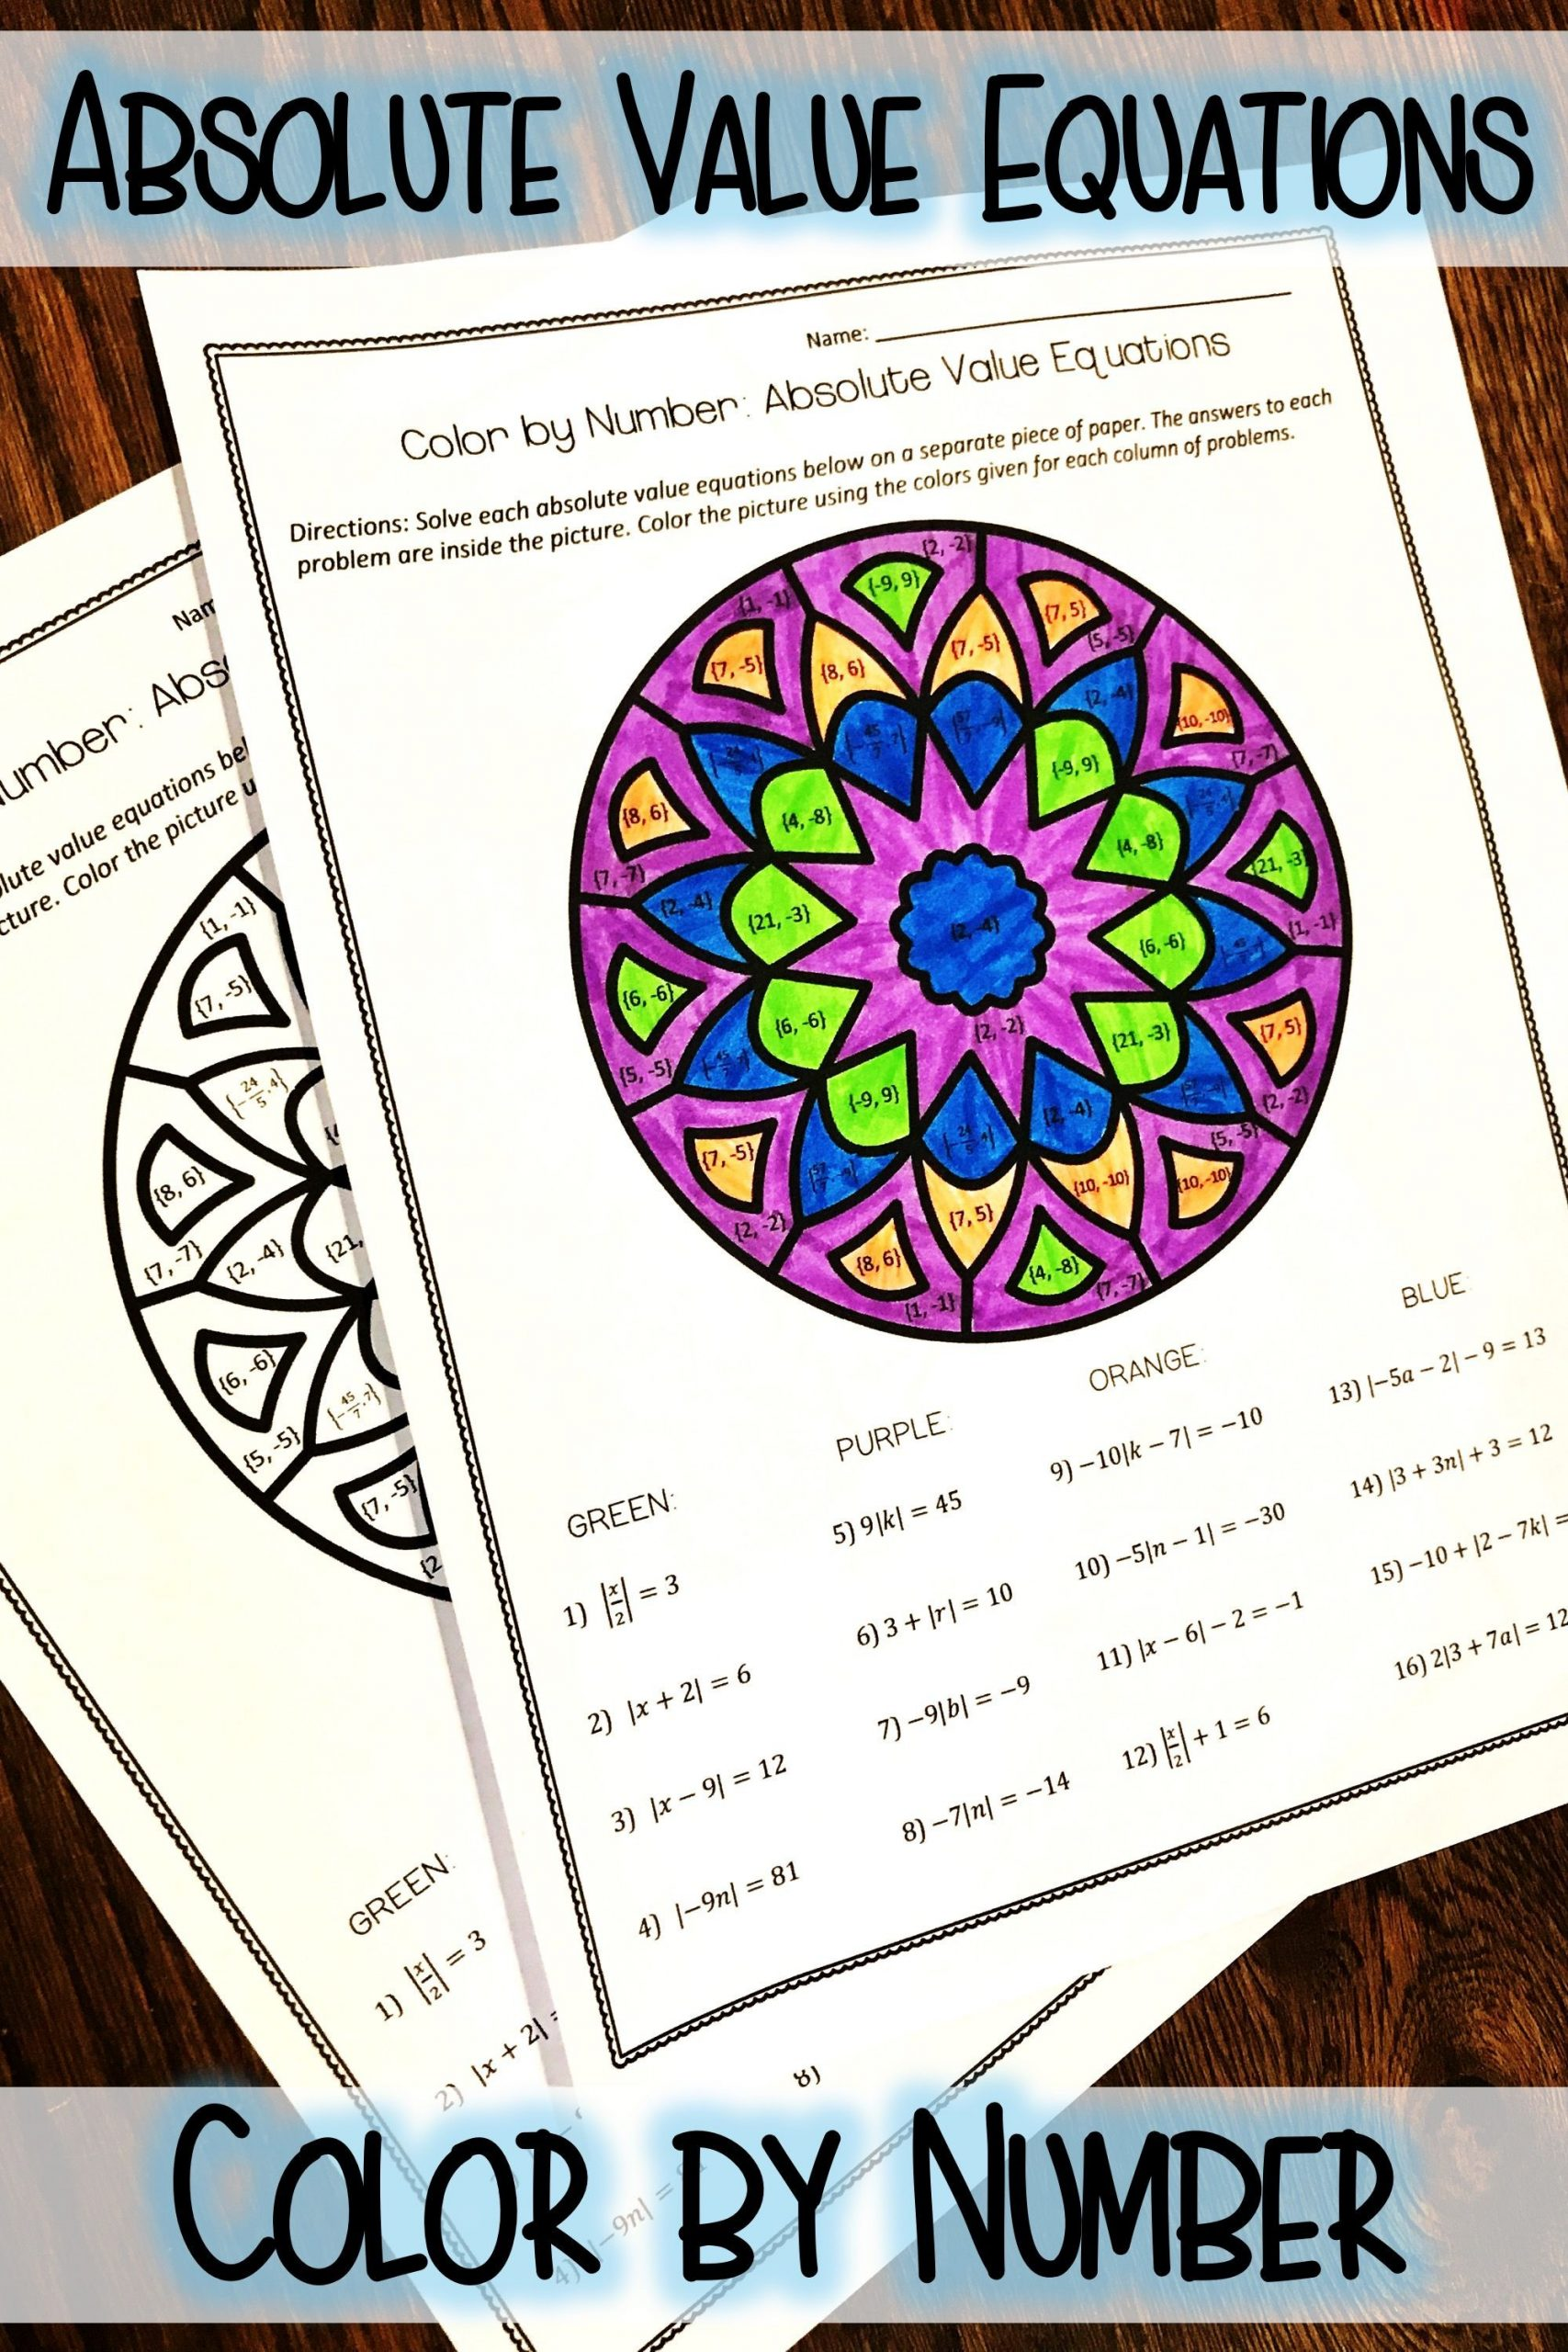 Color by Number Equations Worksheets Absolute Value Equations Color by Number Activity